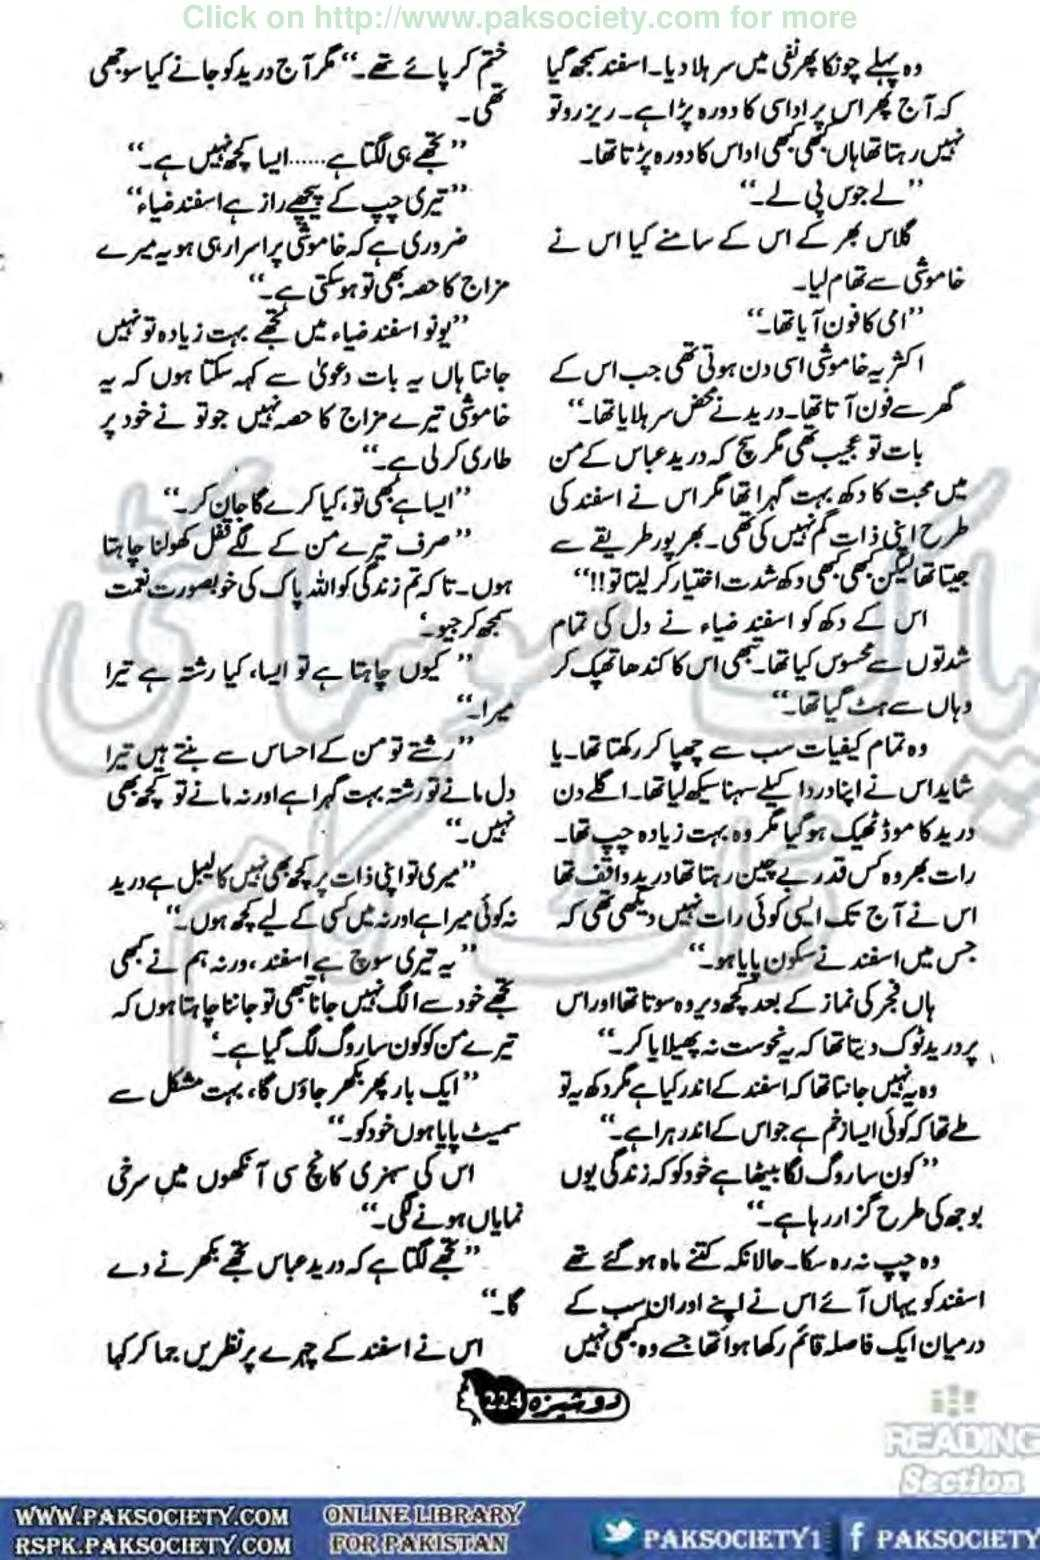 Mohabbat rooth jaey to Complete by Abida Sabeen.